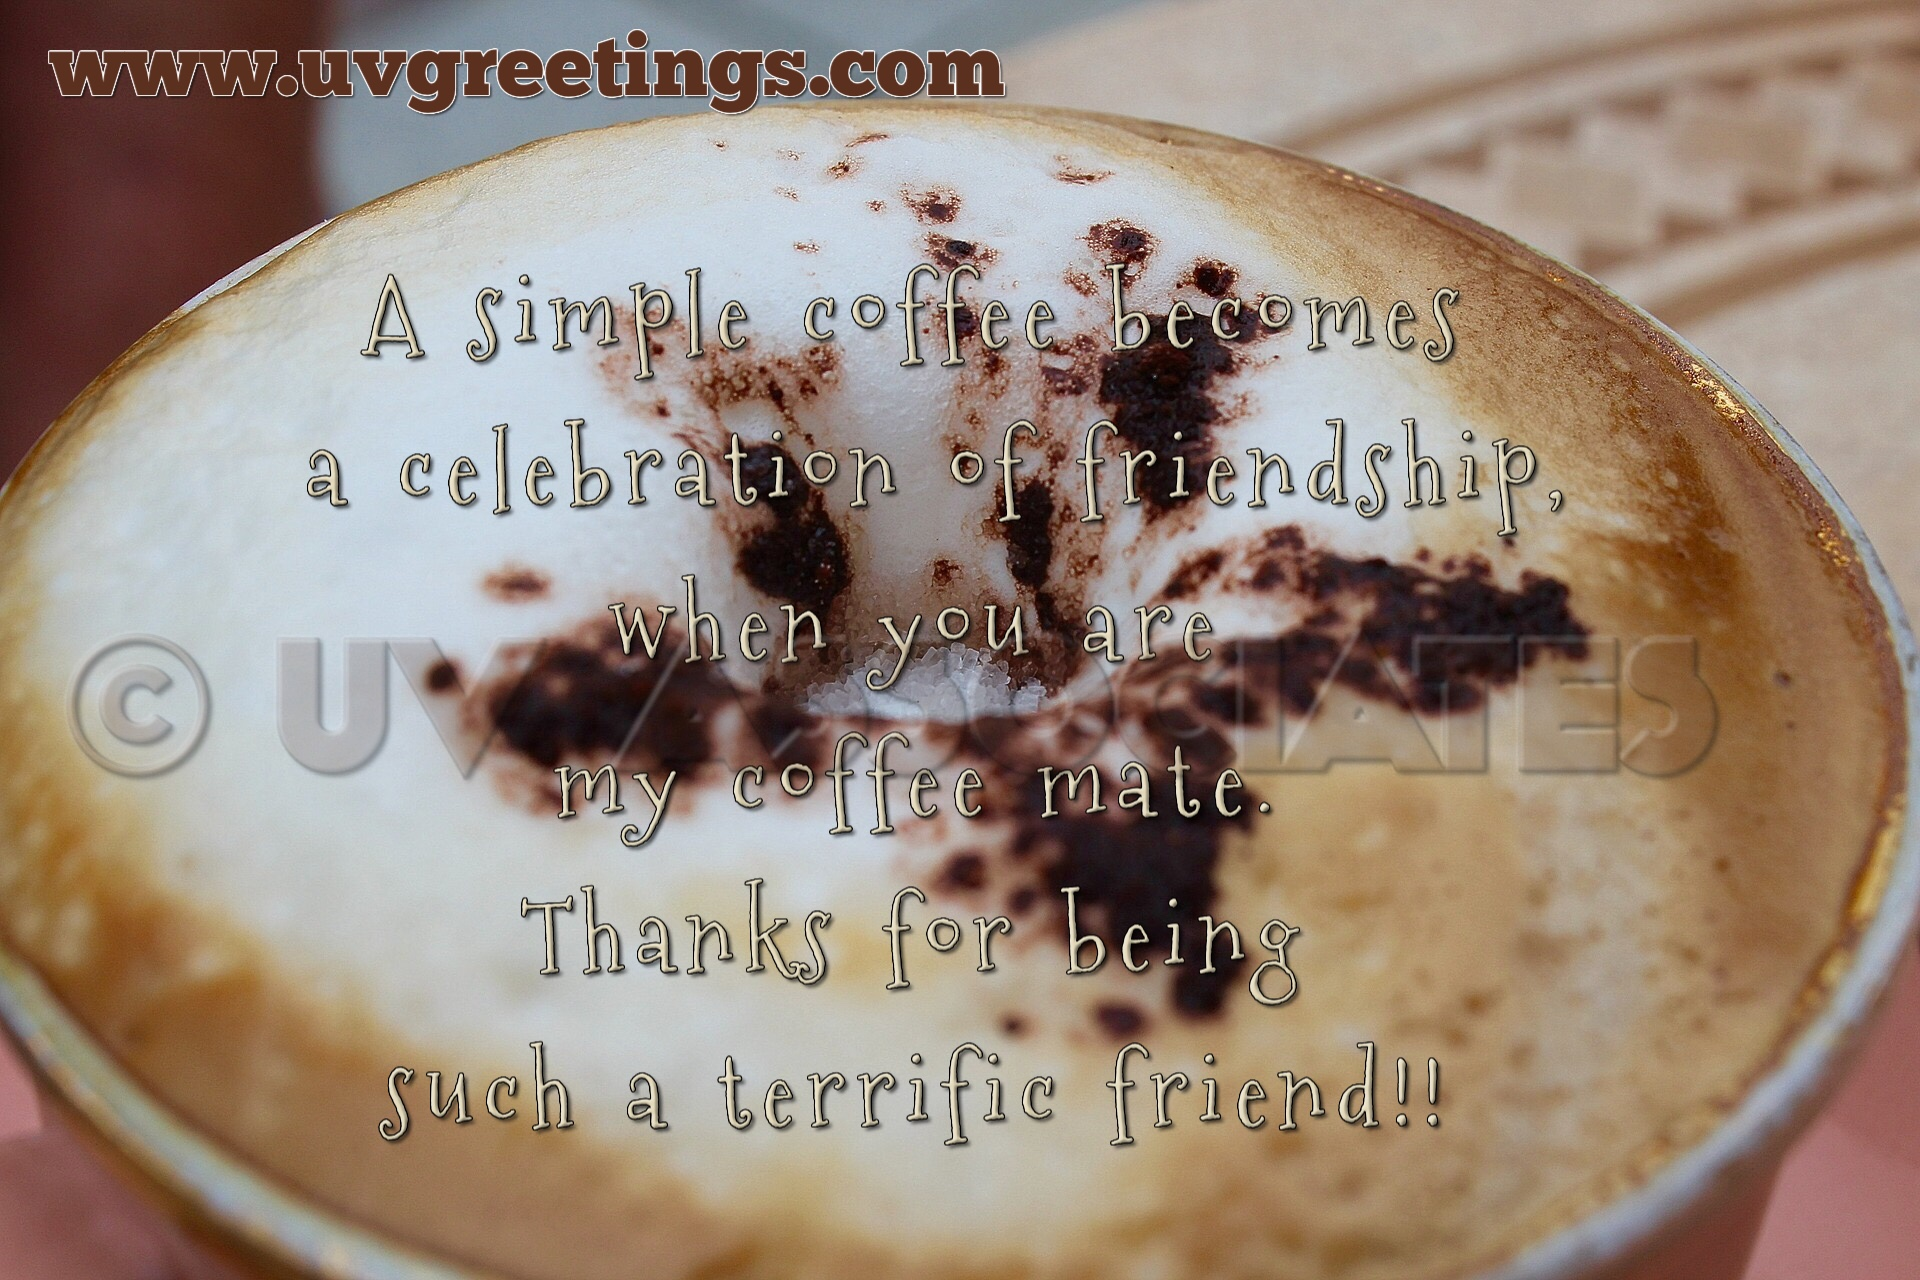 Thank You friend eCard - Coffee Cup becomes Celebration